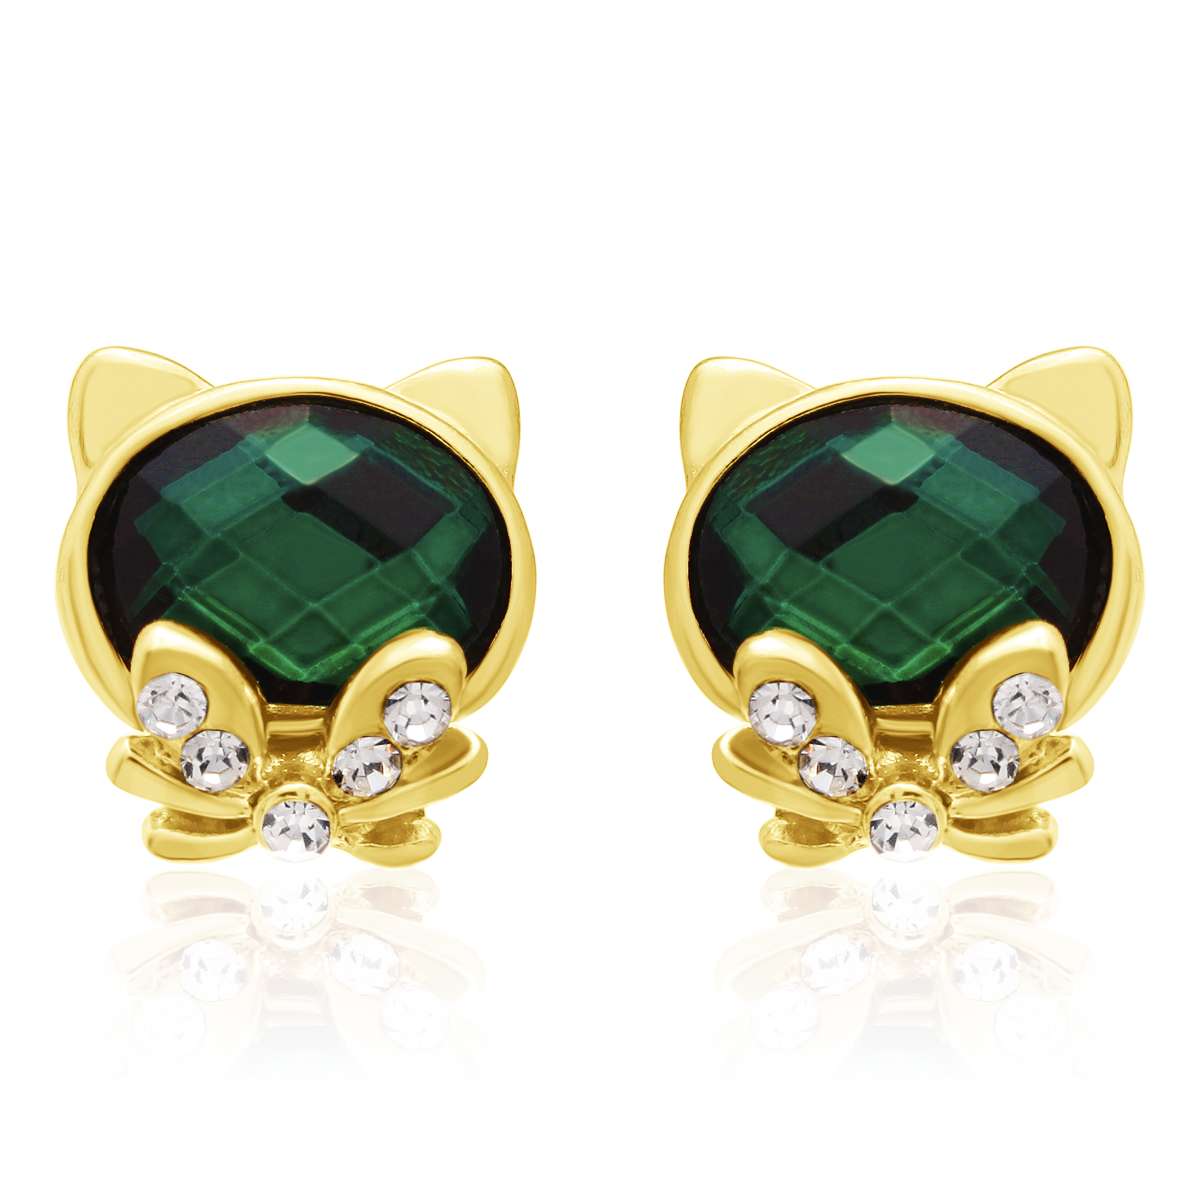 Swarovski Elements Emerald Cat Stud Earrings, Gold Overlay, Pushbacks